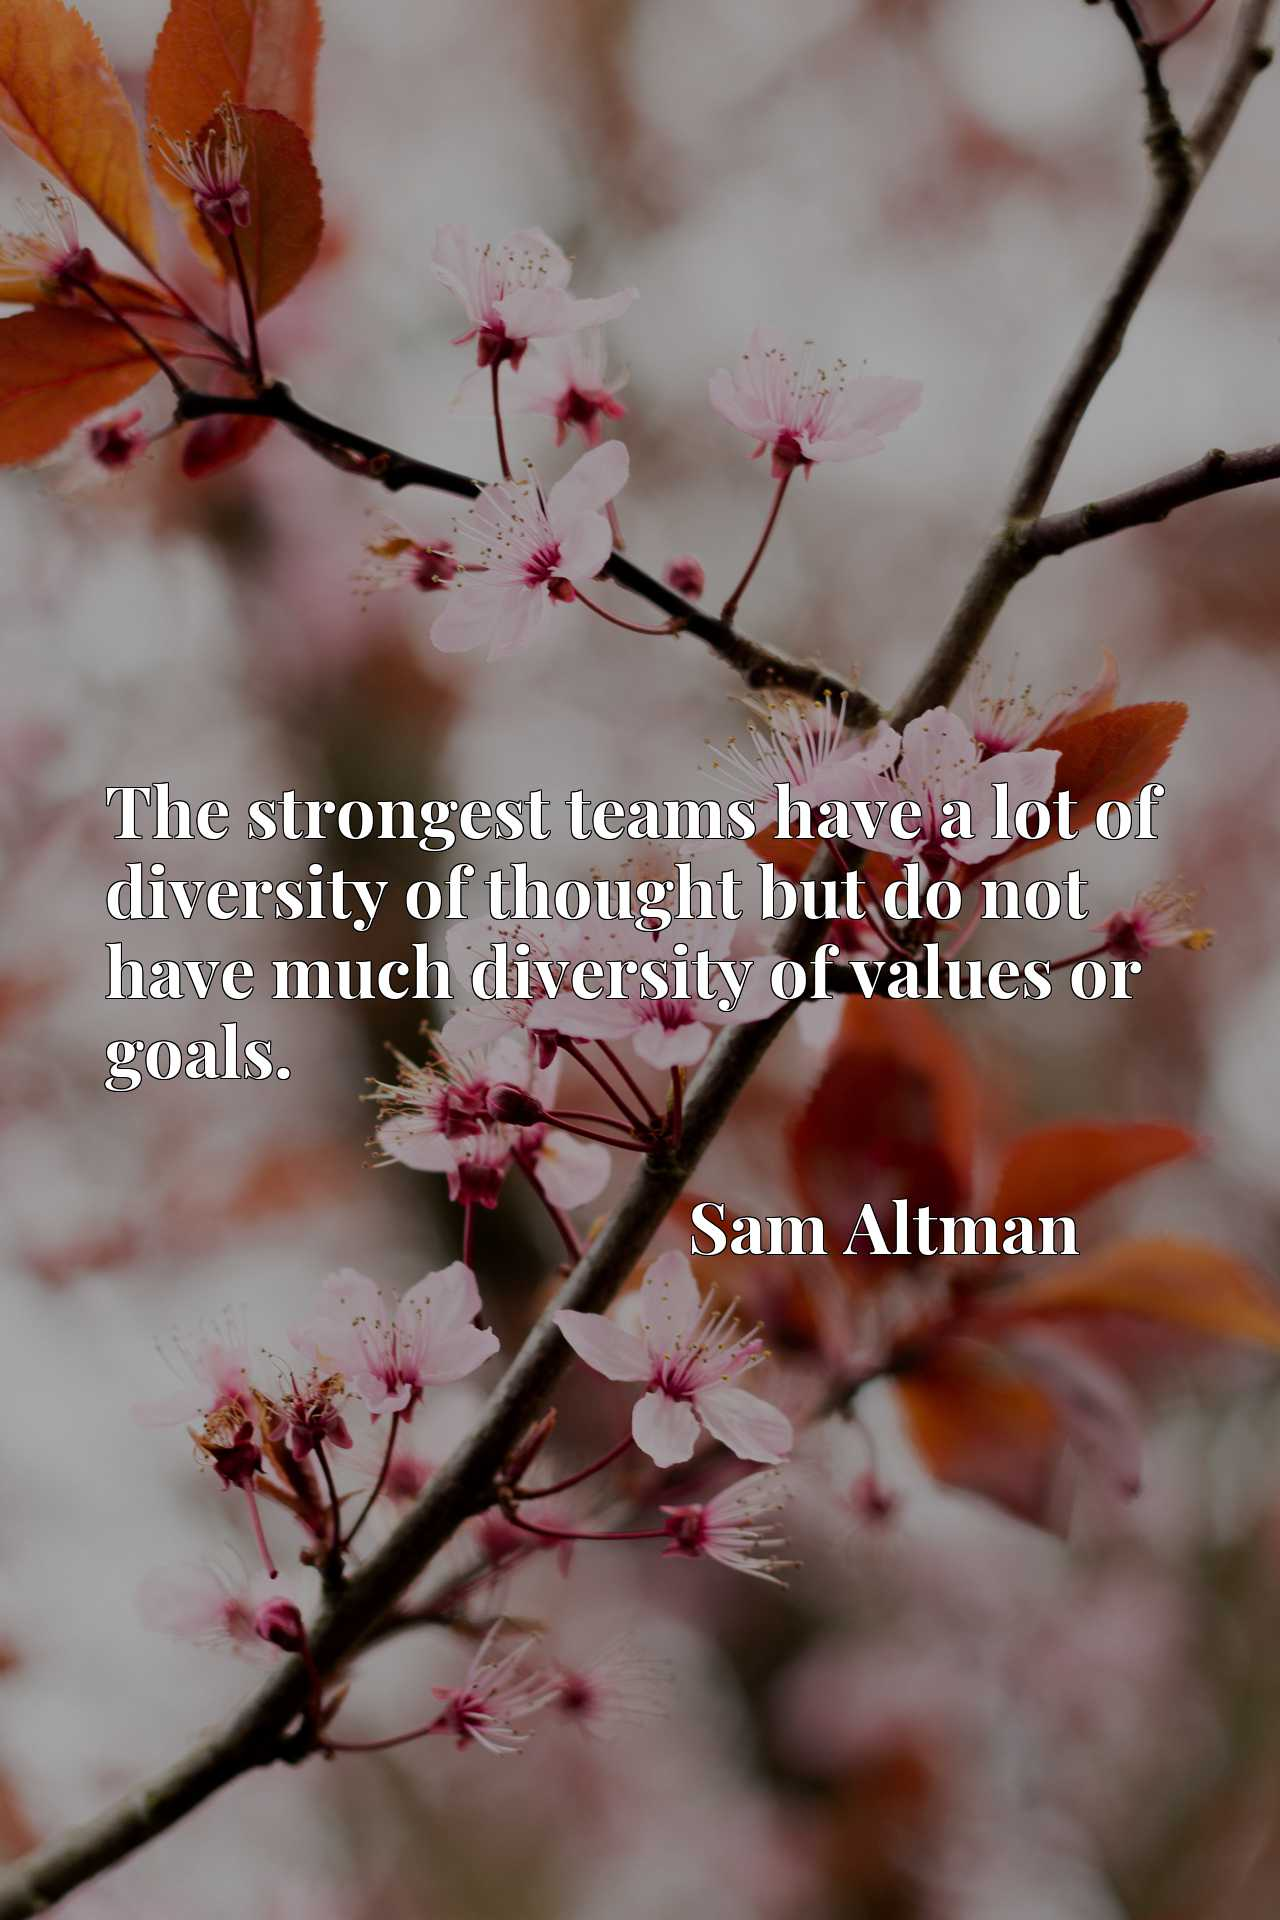 The strongest teams have a lot of diversity of thought but do not have much diversity of values or goals.